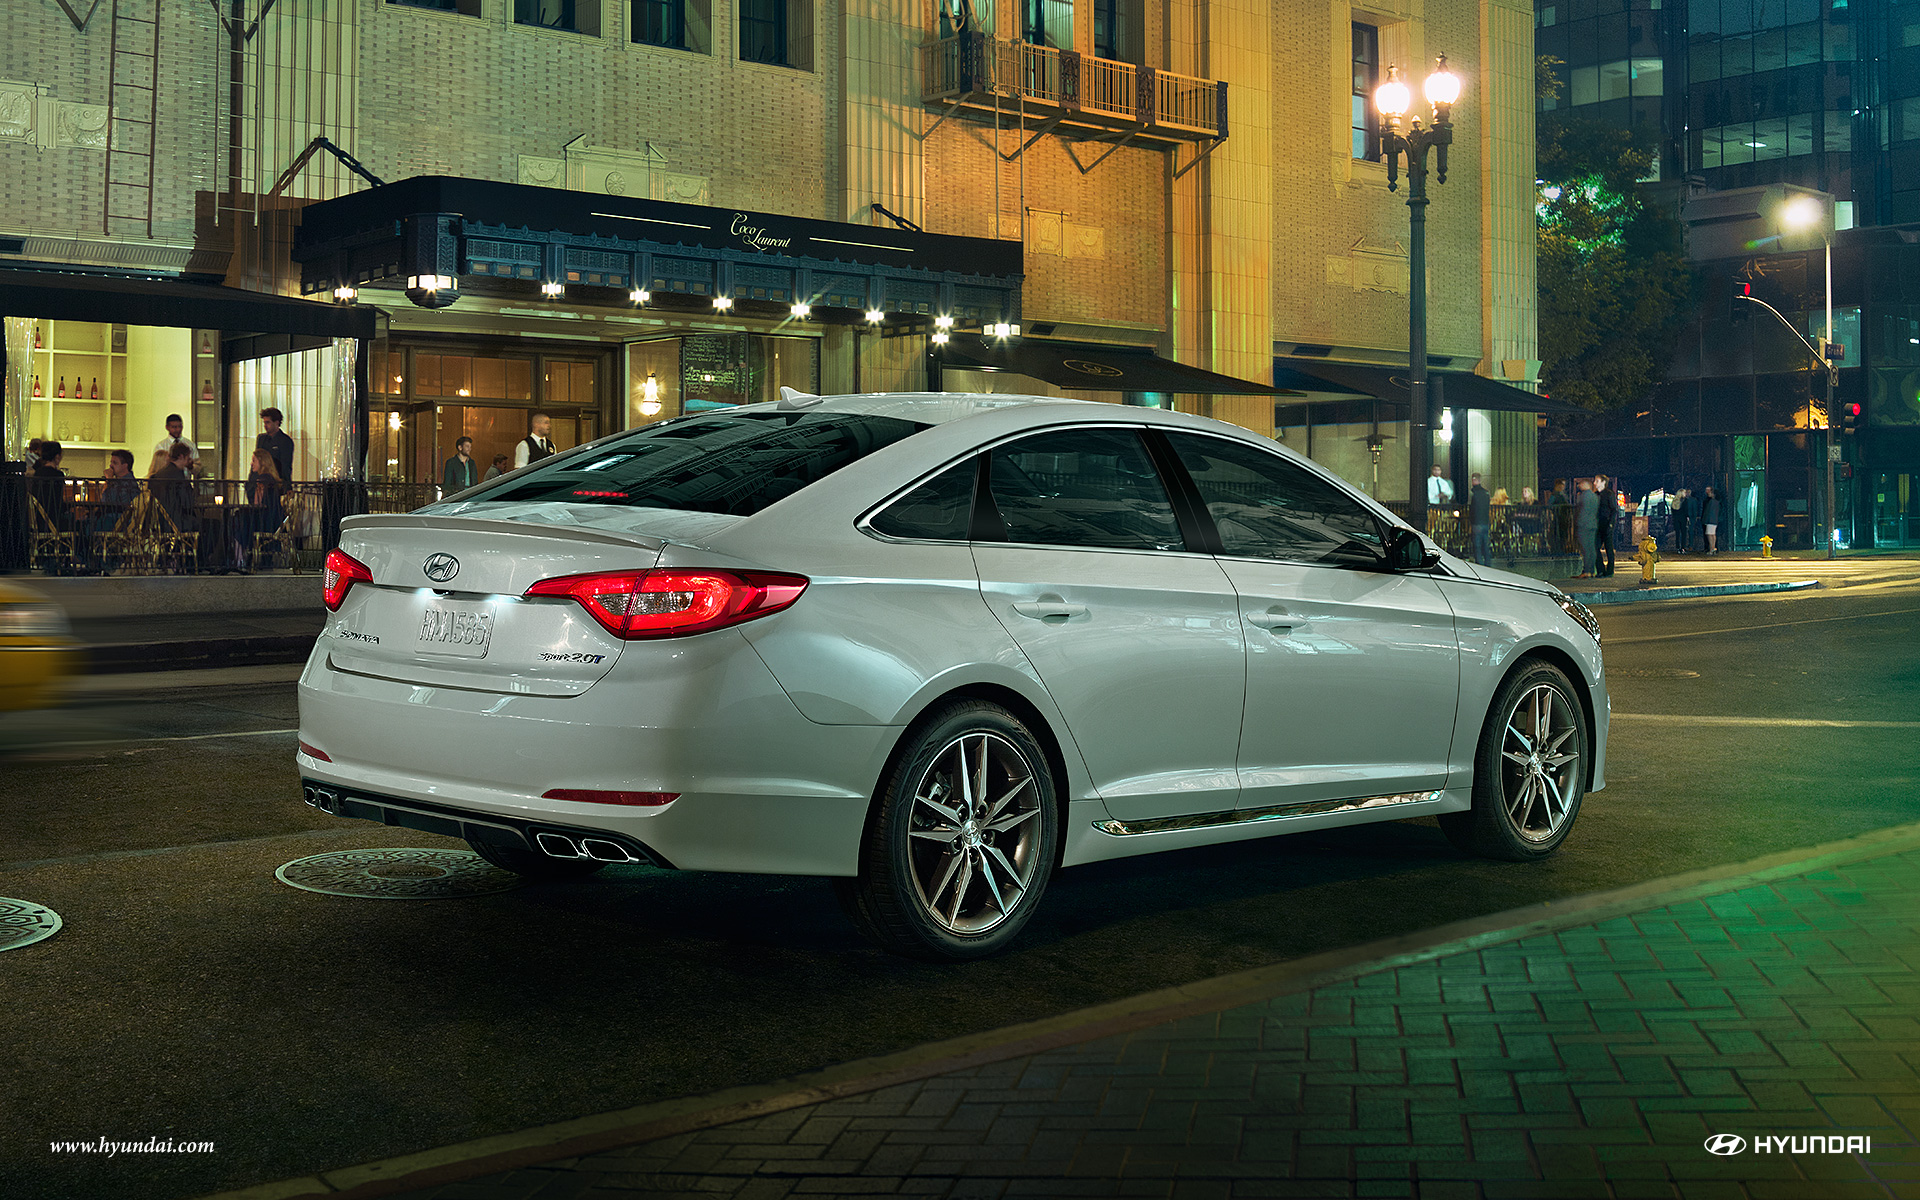 Hyundai Sonata The Mid Size Sedan That Gives You More For Your Money Of New Bern Blog